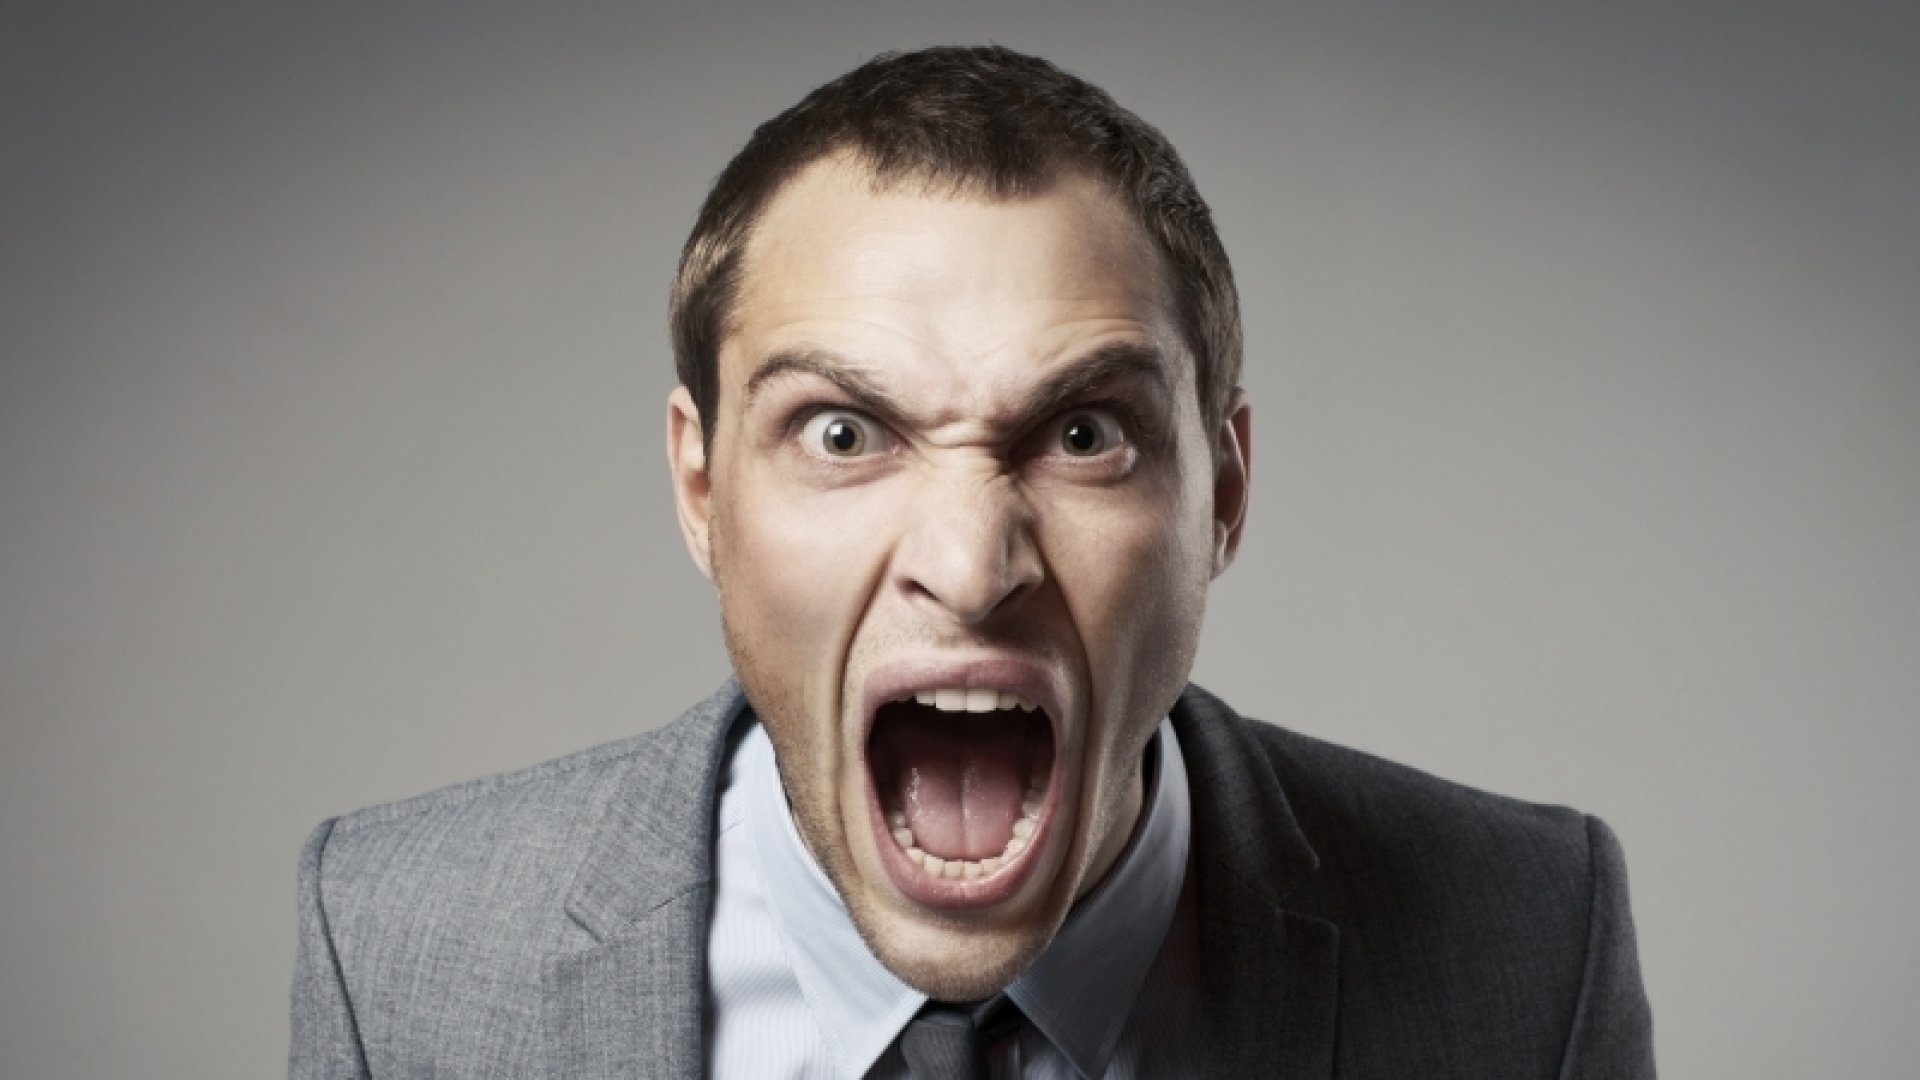 3 Things Great Leaders Do With Their Anger